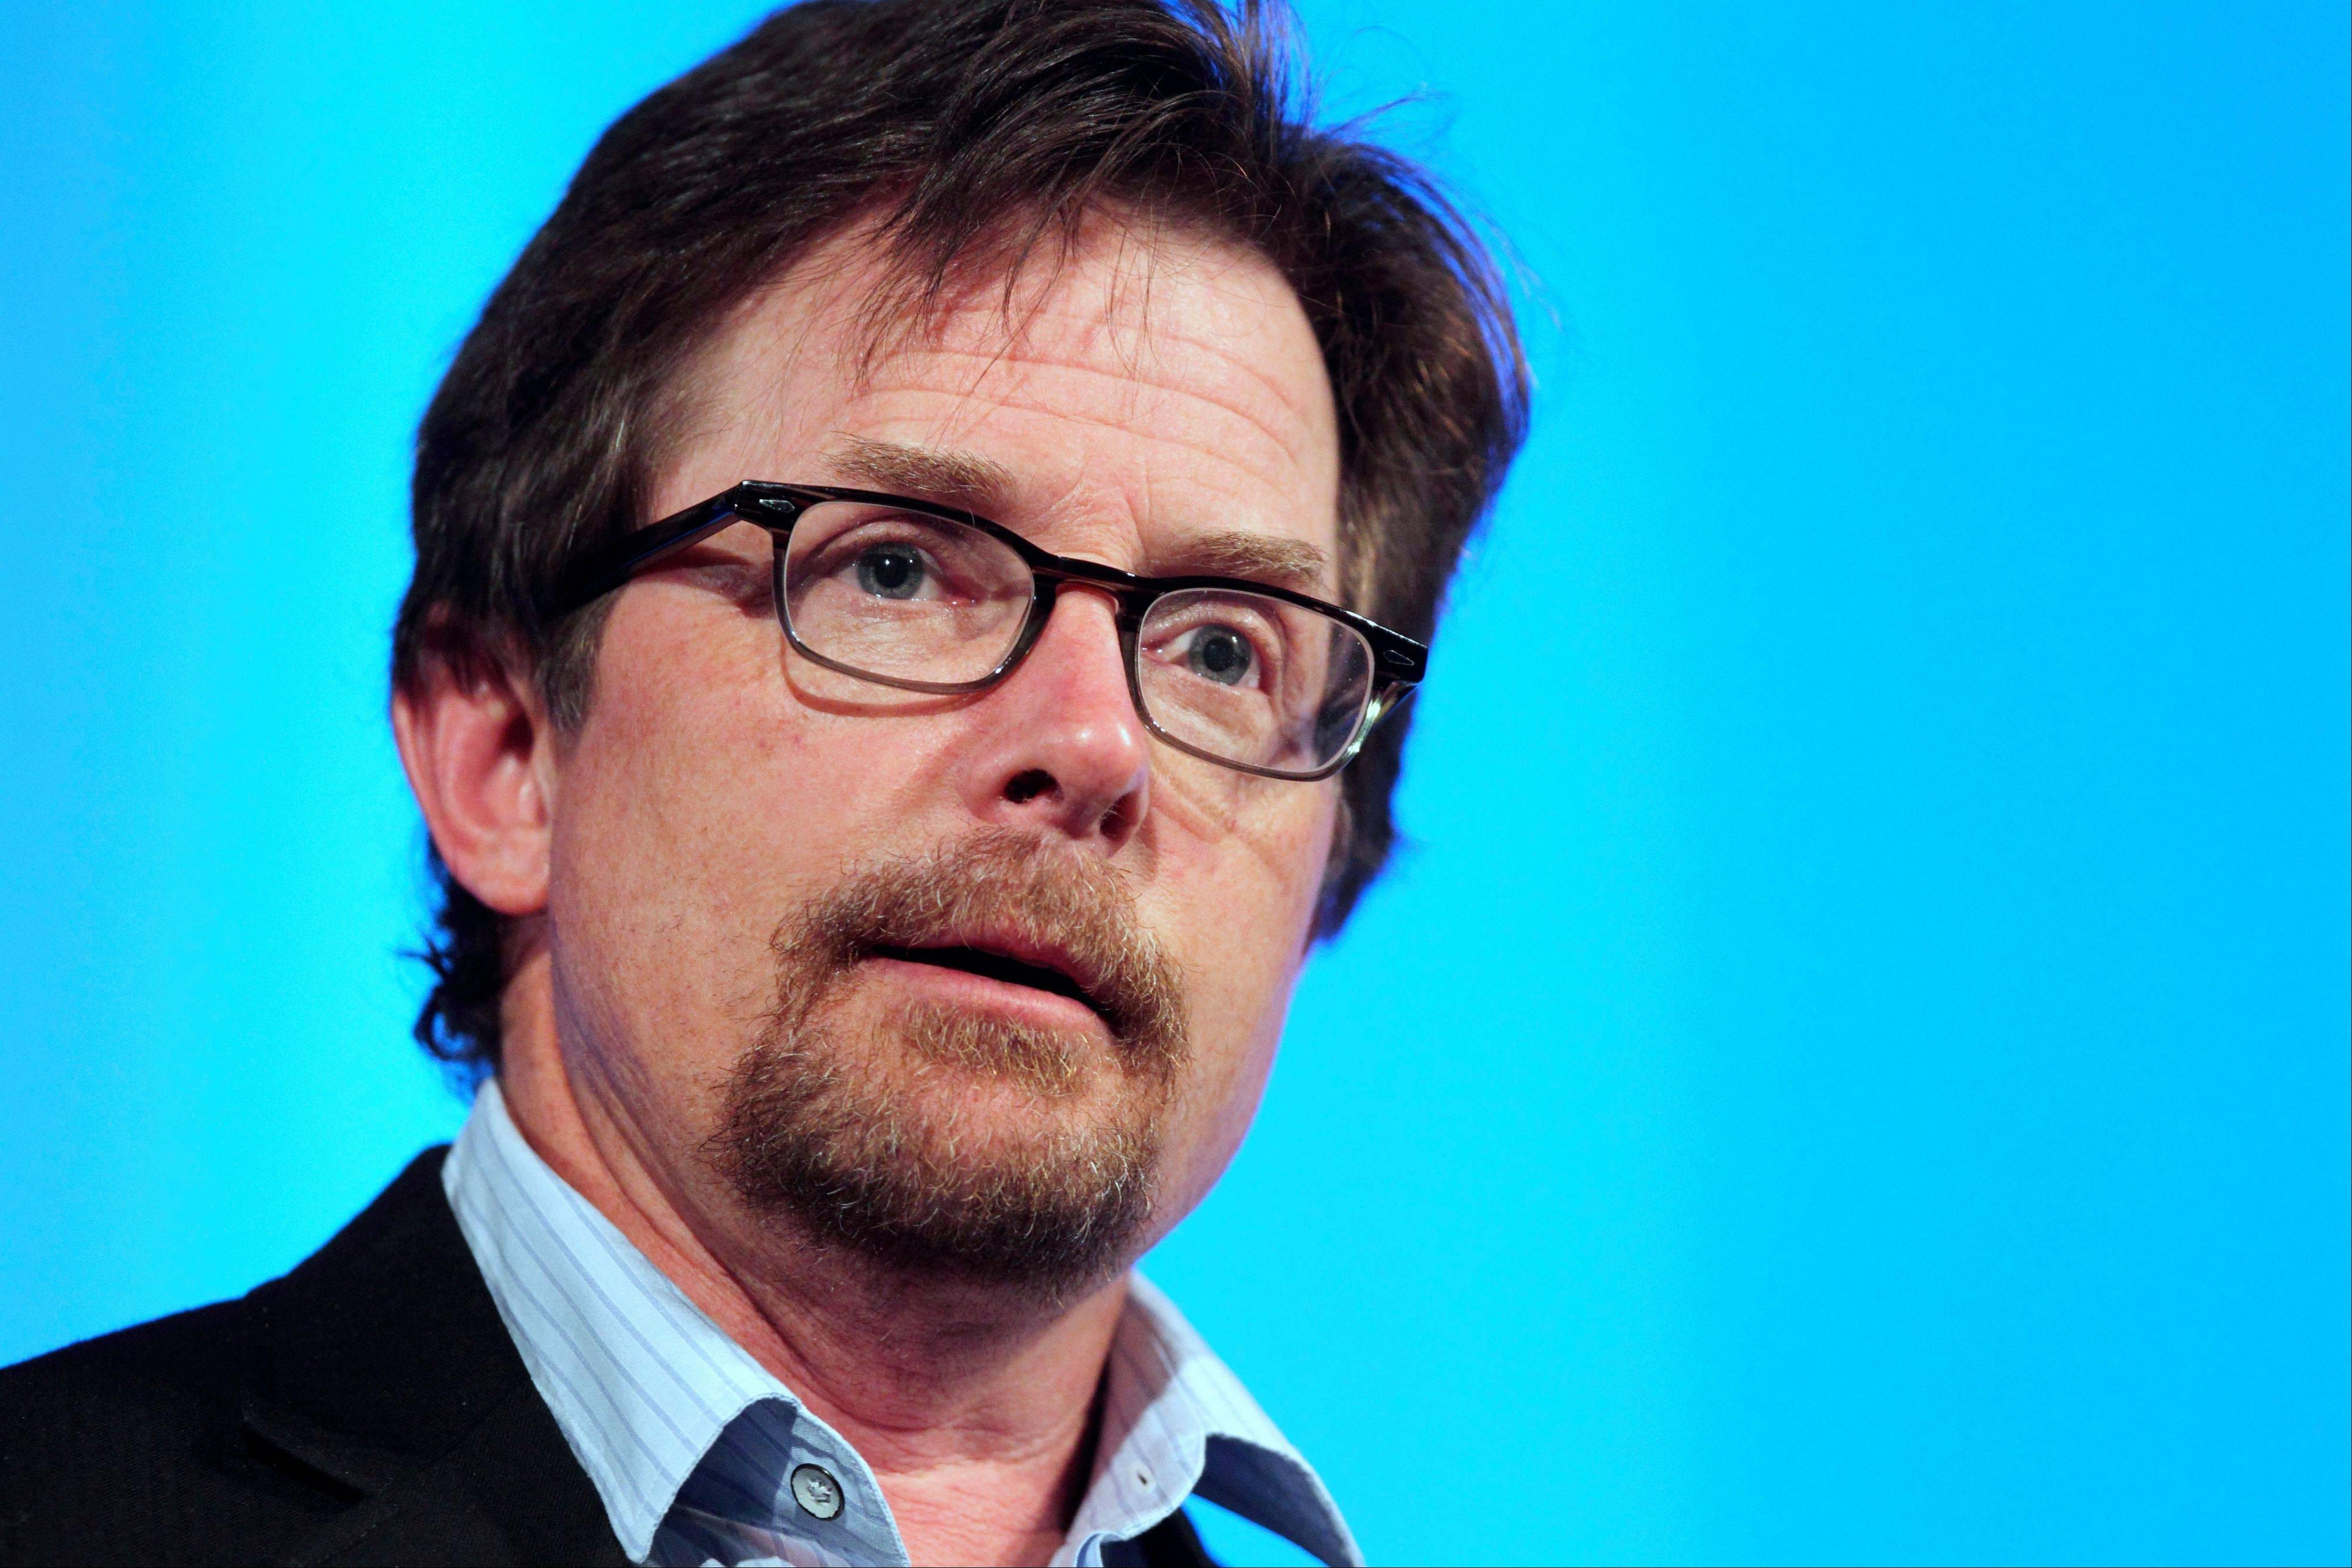 Michael J. Fox will be returning to network television with a new show.